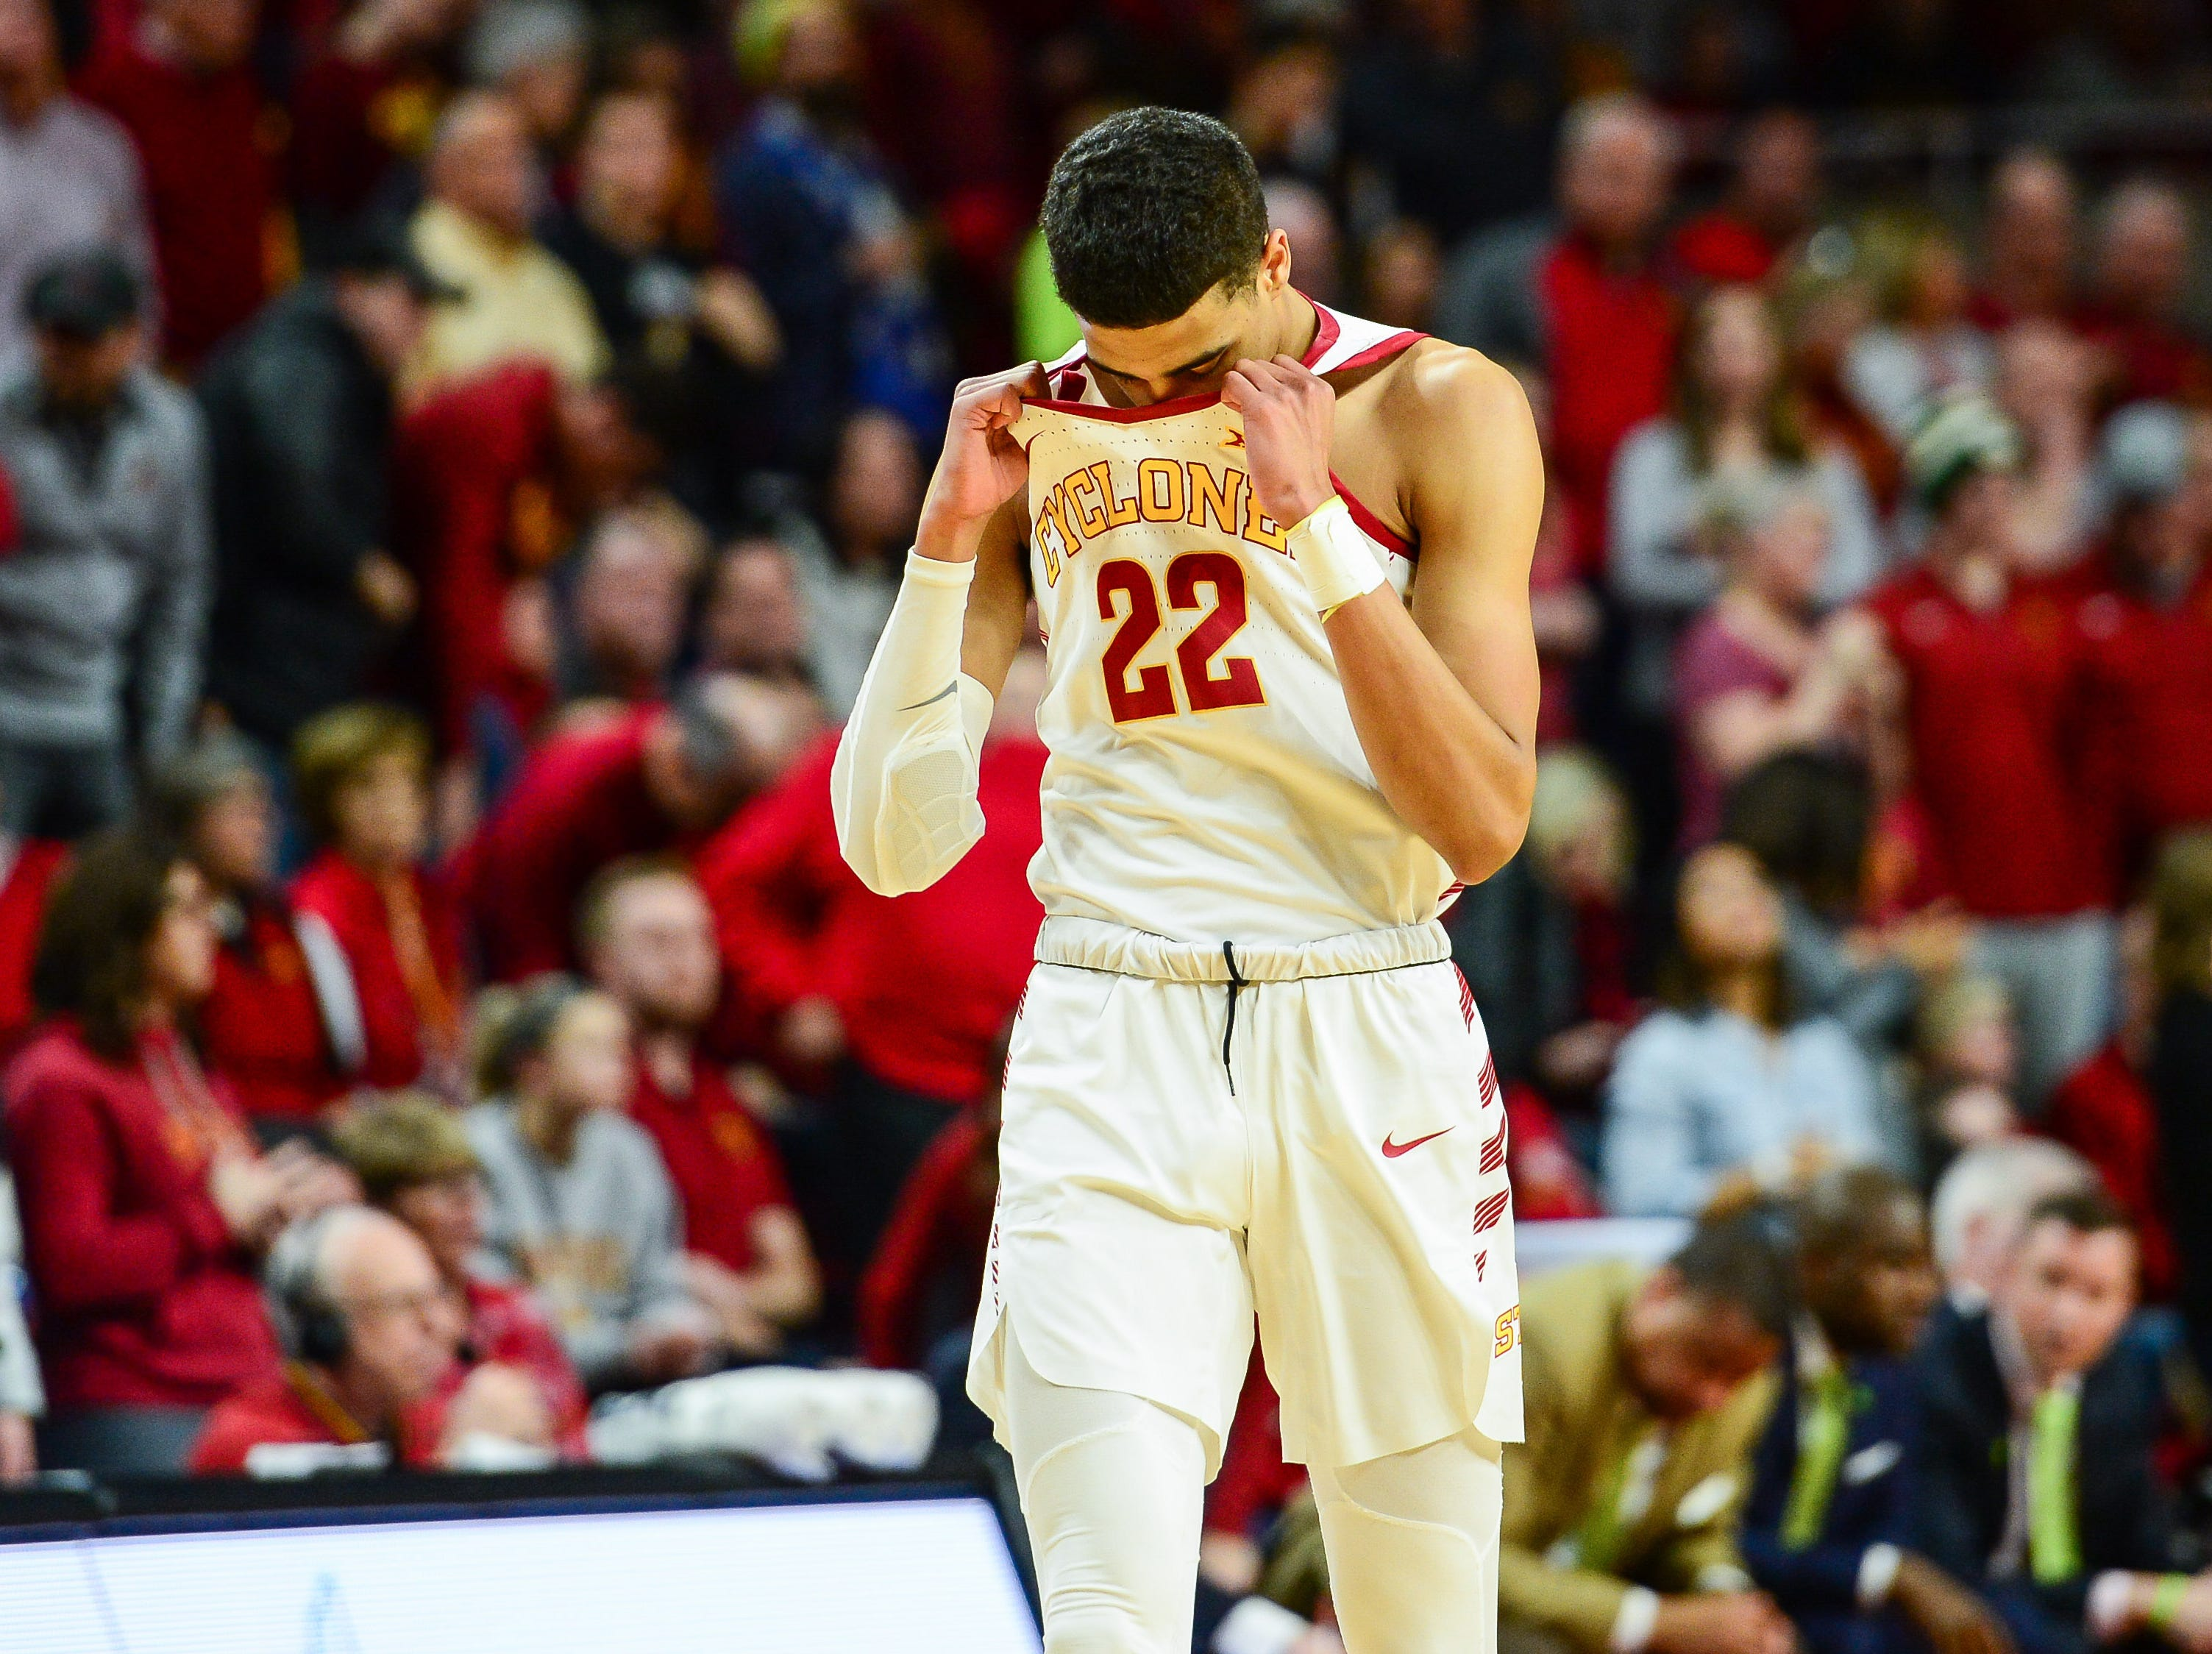 Feb 9, 2019; Ames, IA, USA; Iowa State Cyclones guard Tyrese Haliburton (22) reacts during the second half of the Cyclones' game against TCU on Saturday, Feb. 9, 2019, at Hilton Coliseum in Ames.